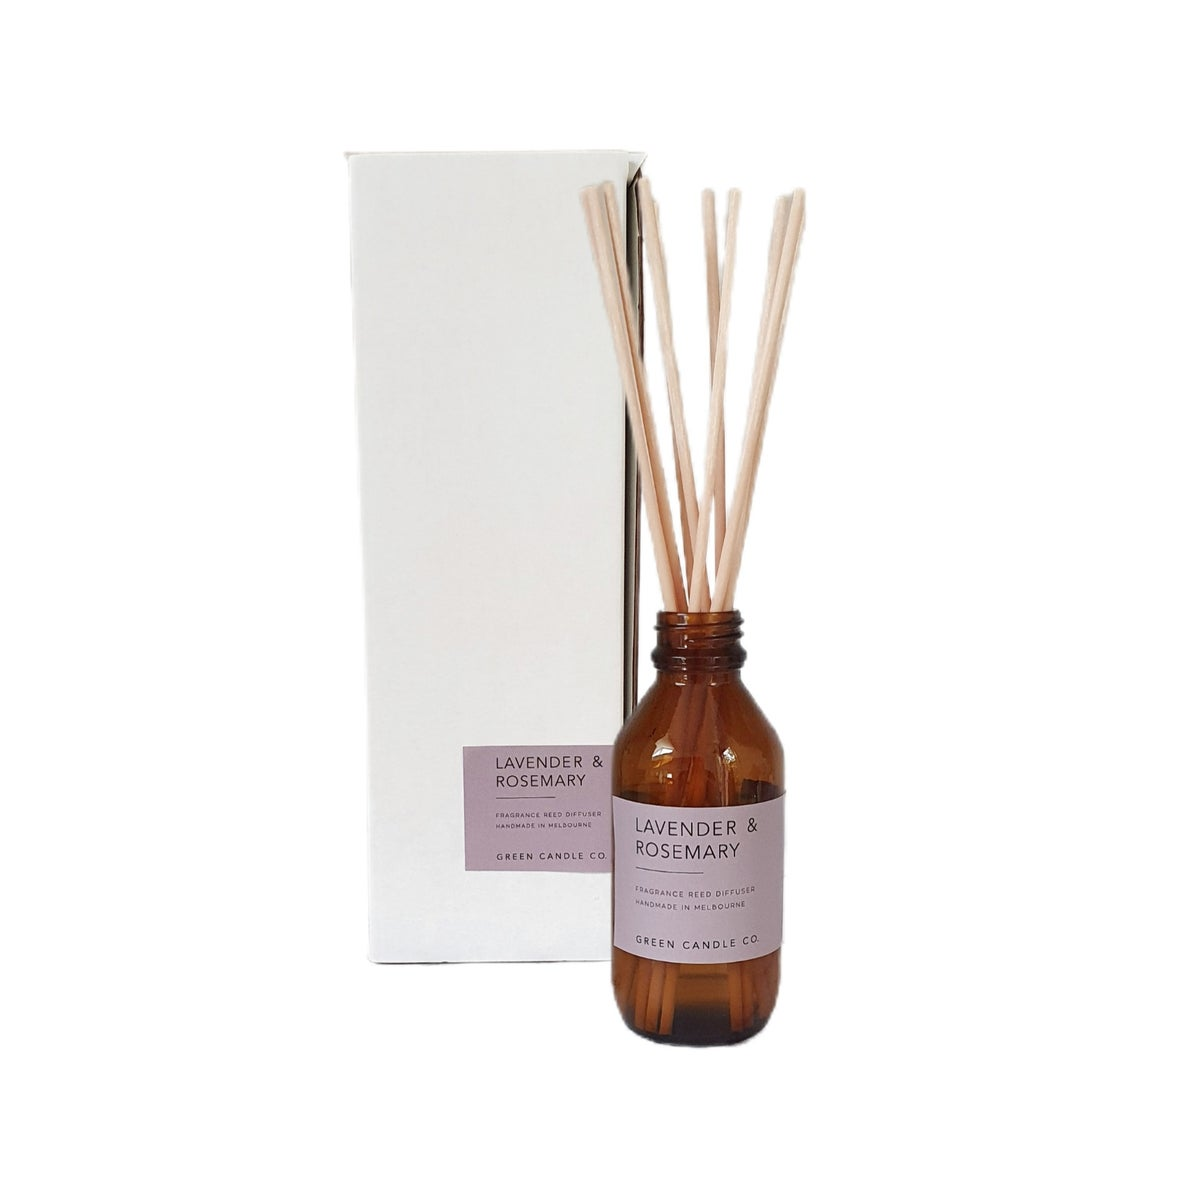 Image of LAVENDER & ROSEMARY / Reed Diffuser